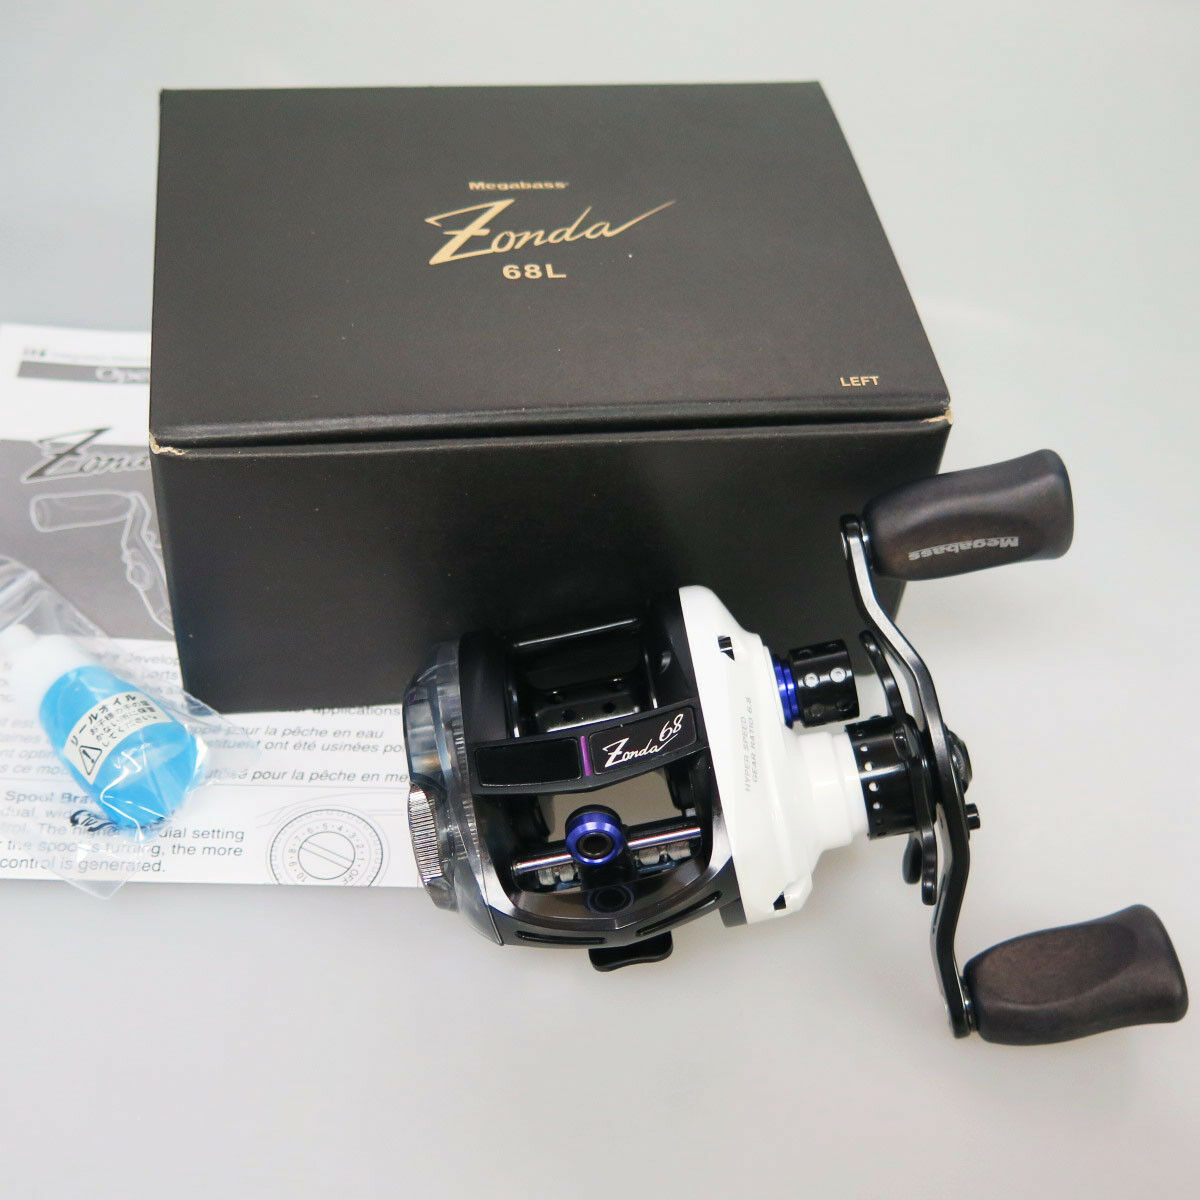 MEGABASS ZONDA 68 Left White  LIMITED EDITION BAITCAST Reel Fedex to Usa  come to choose your own sports style